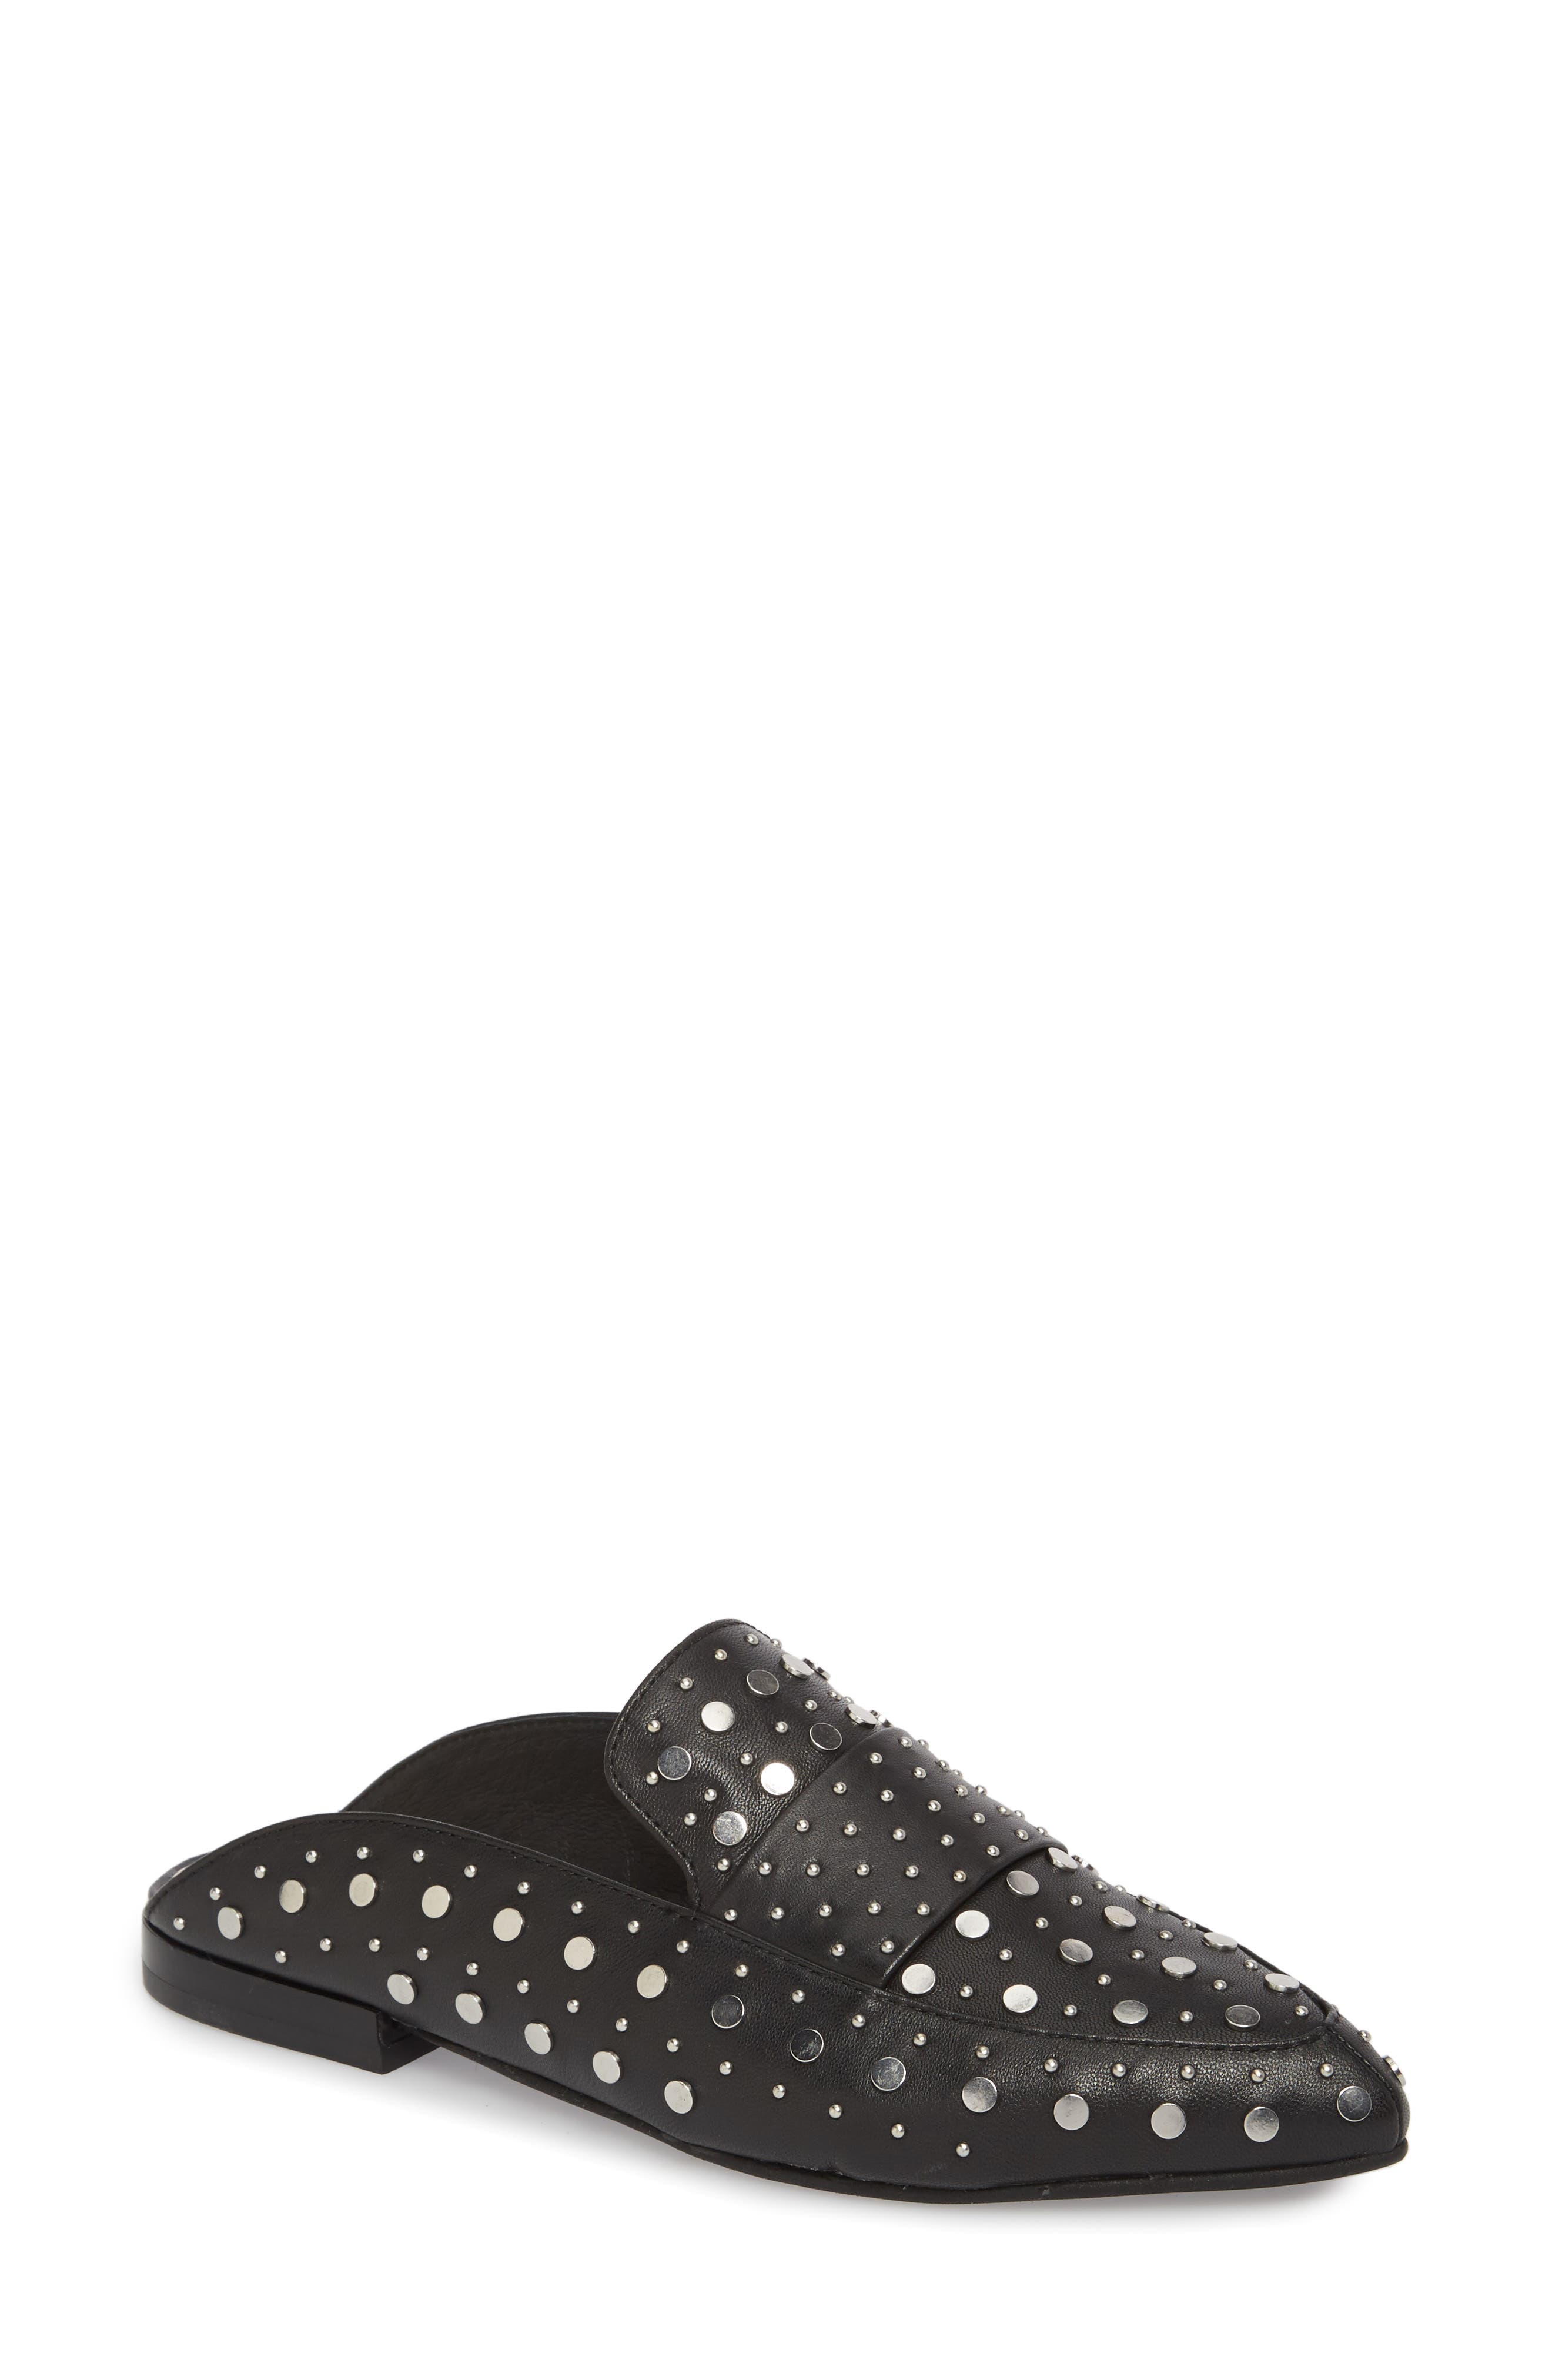 Charlie Studded Loafer Mule,                             Main thumbnail 1, color,                             Black Leather